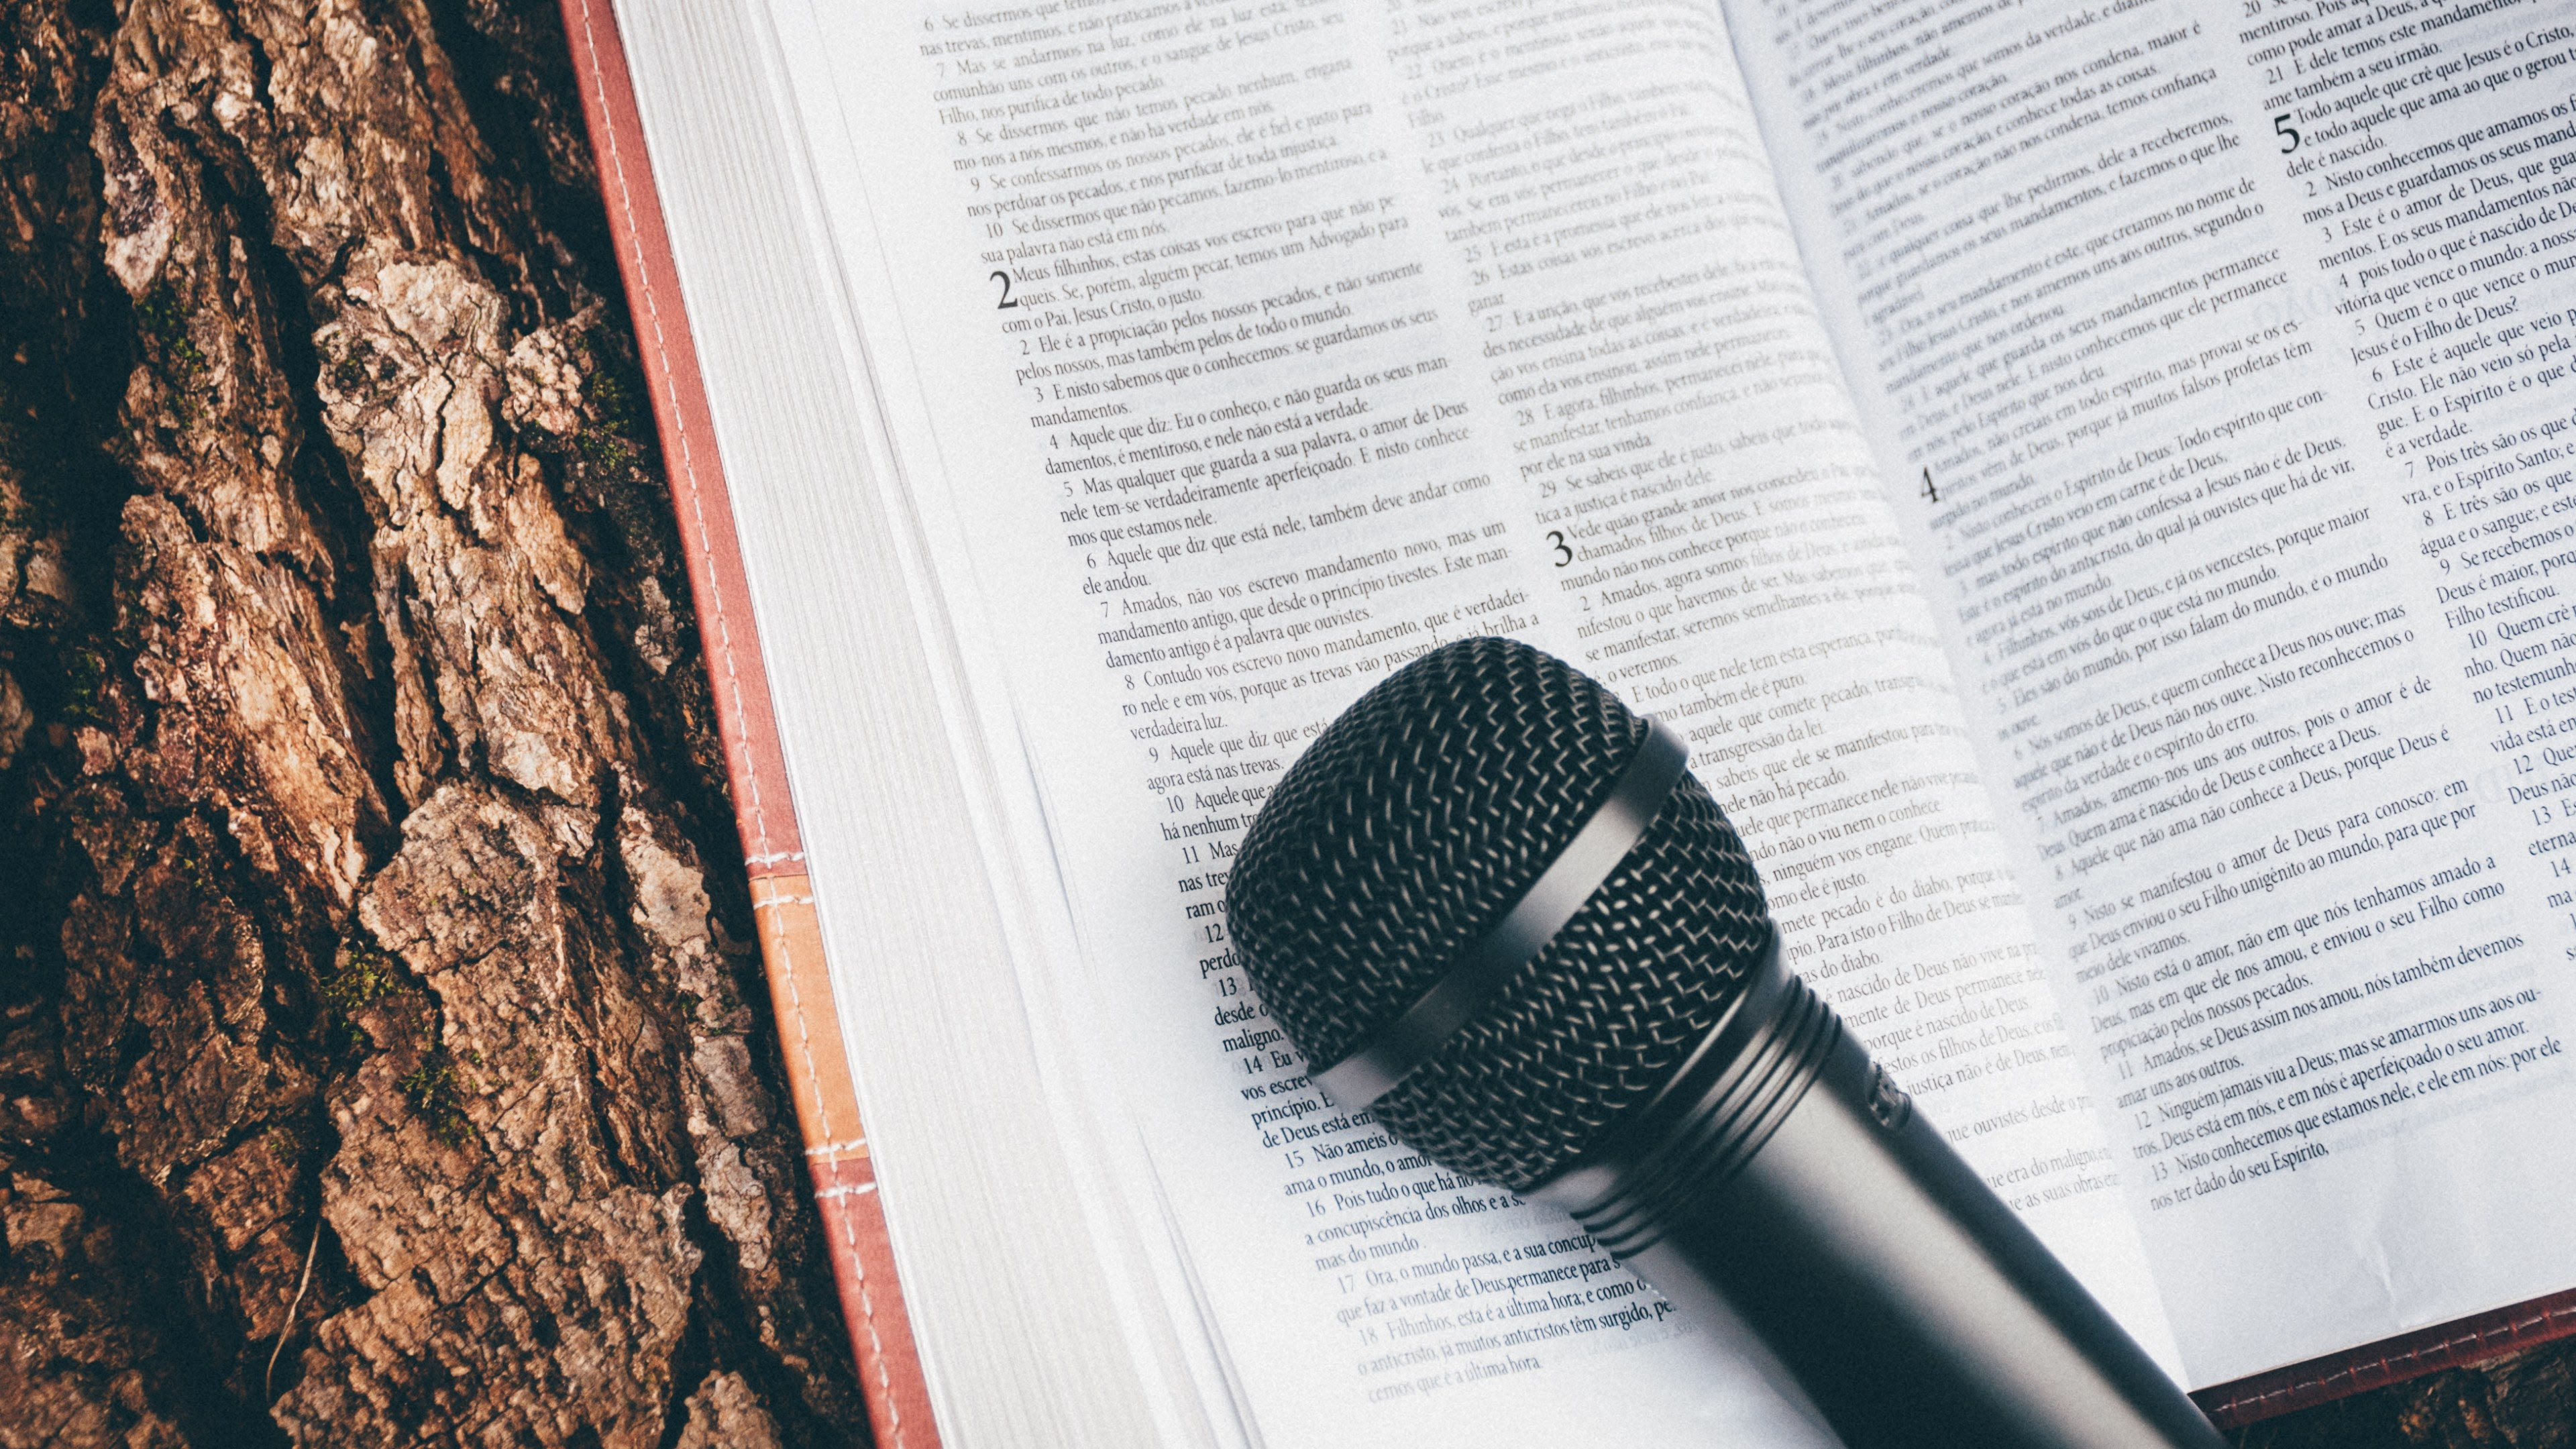 A Microphone And Bible Resting On A Tree Stumppraise And Worship